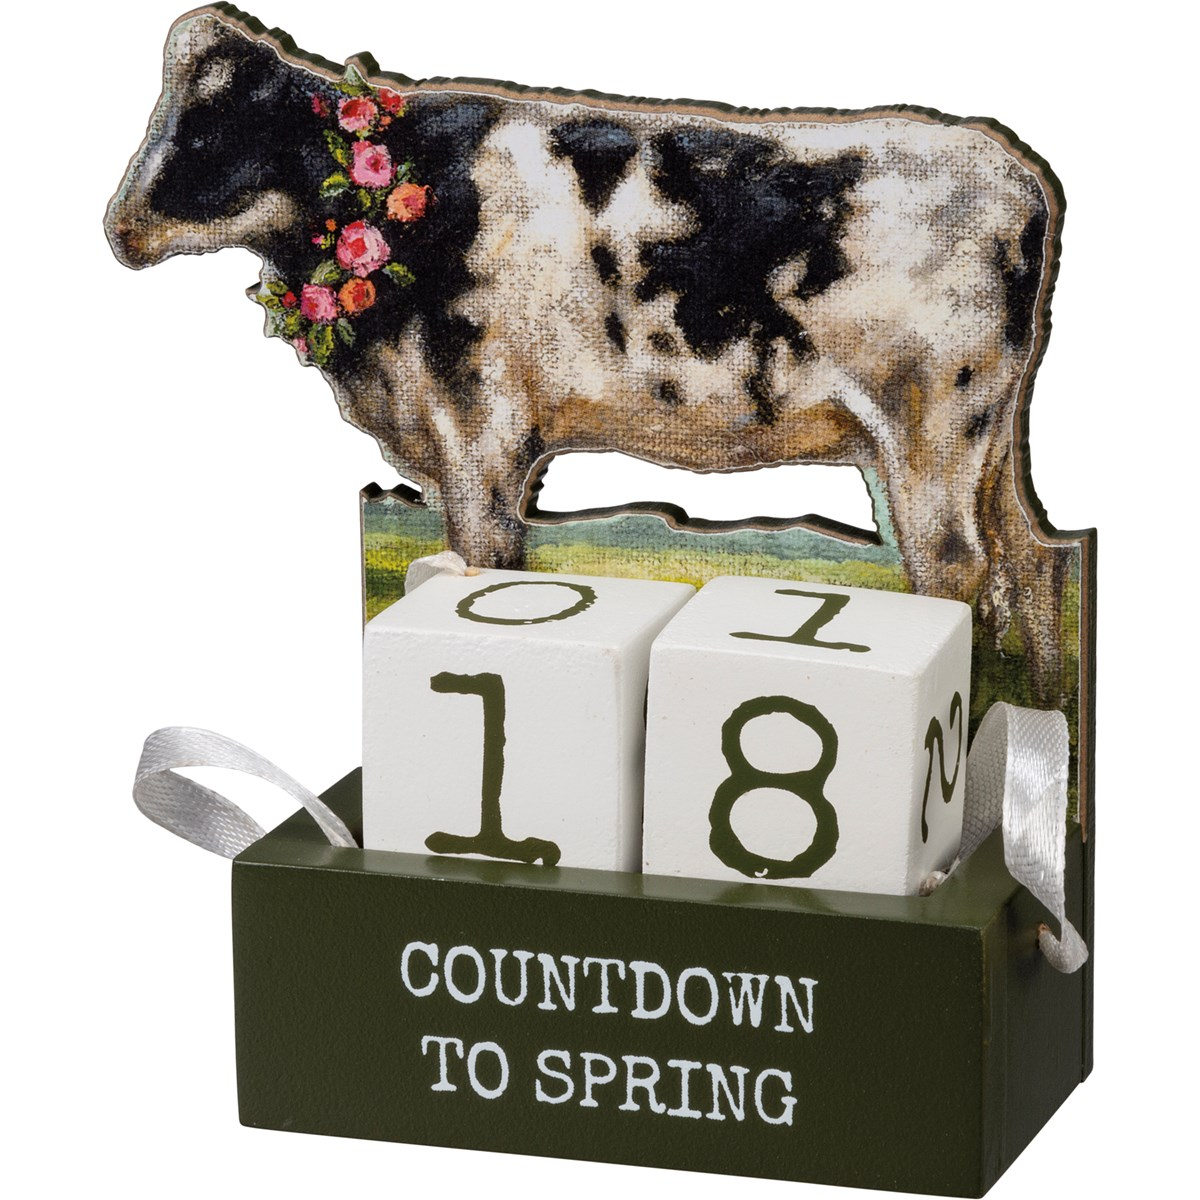 "Block Countdown - Cow - Countdown To Spring - 4.75"" x 4.75"" x 2.50"" - Wood, Paper, Fabric"